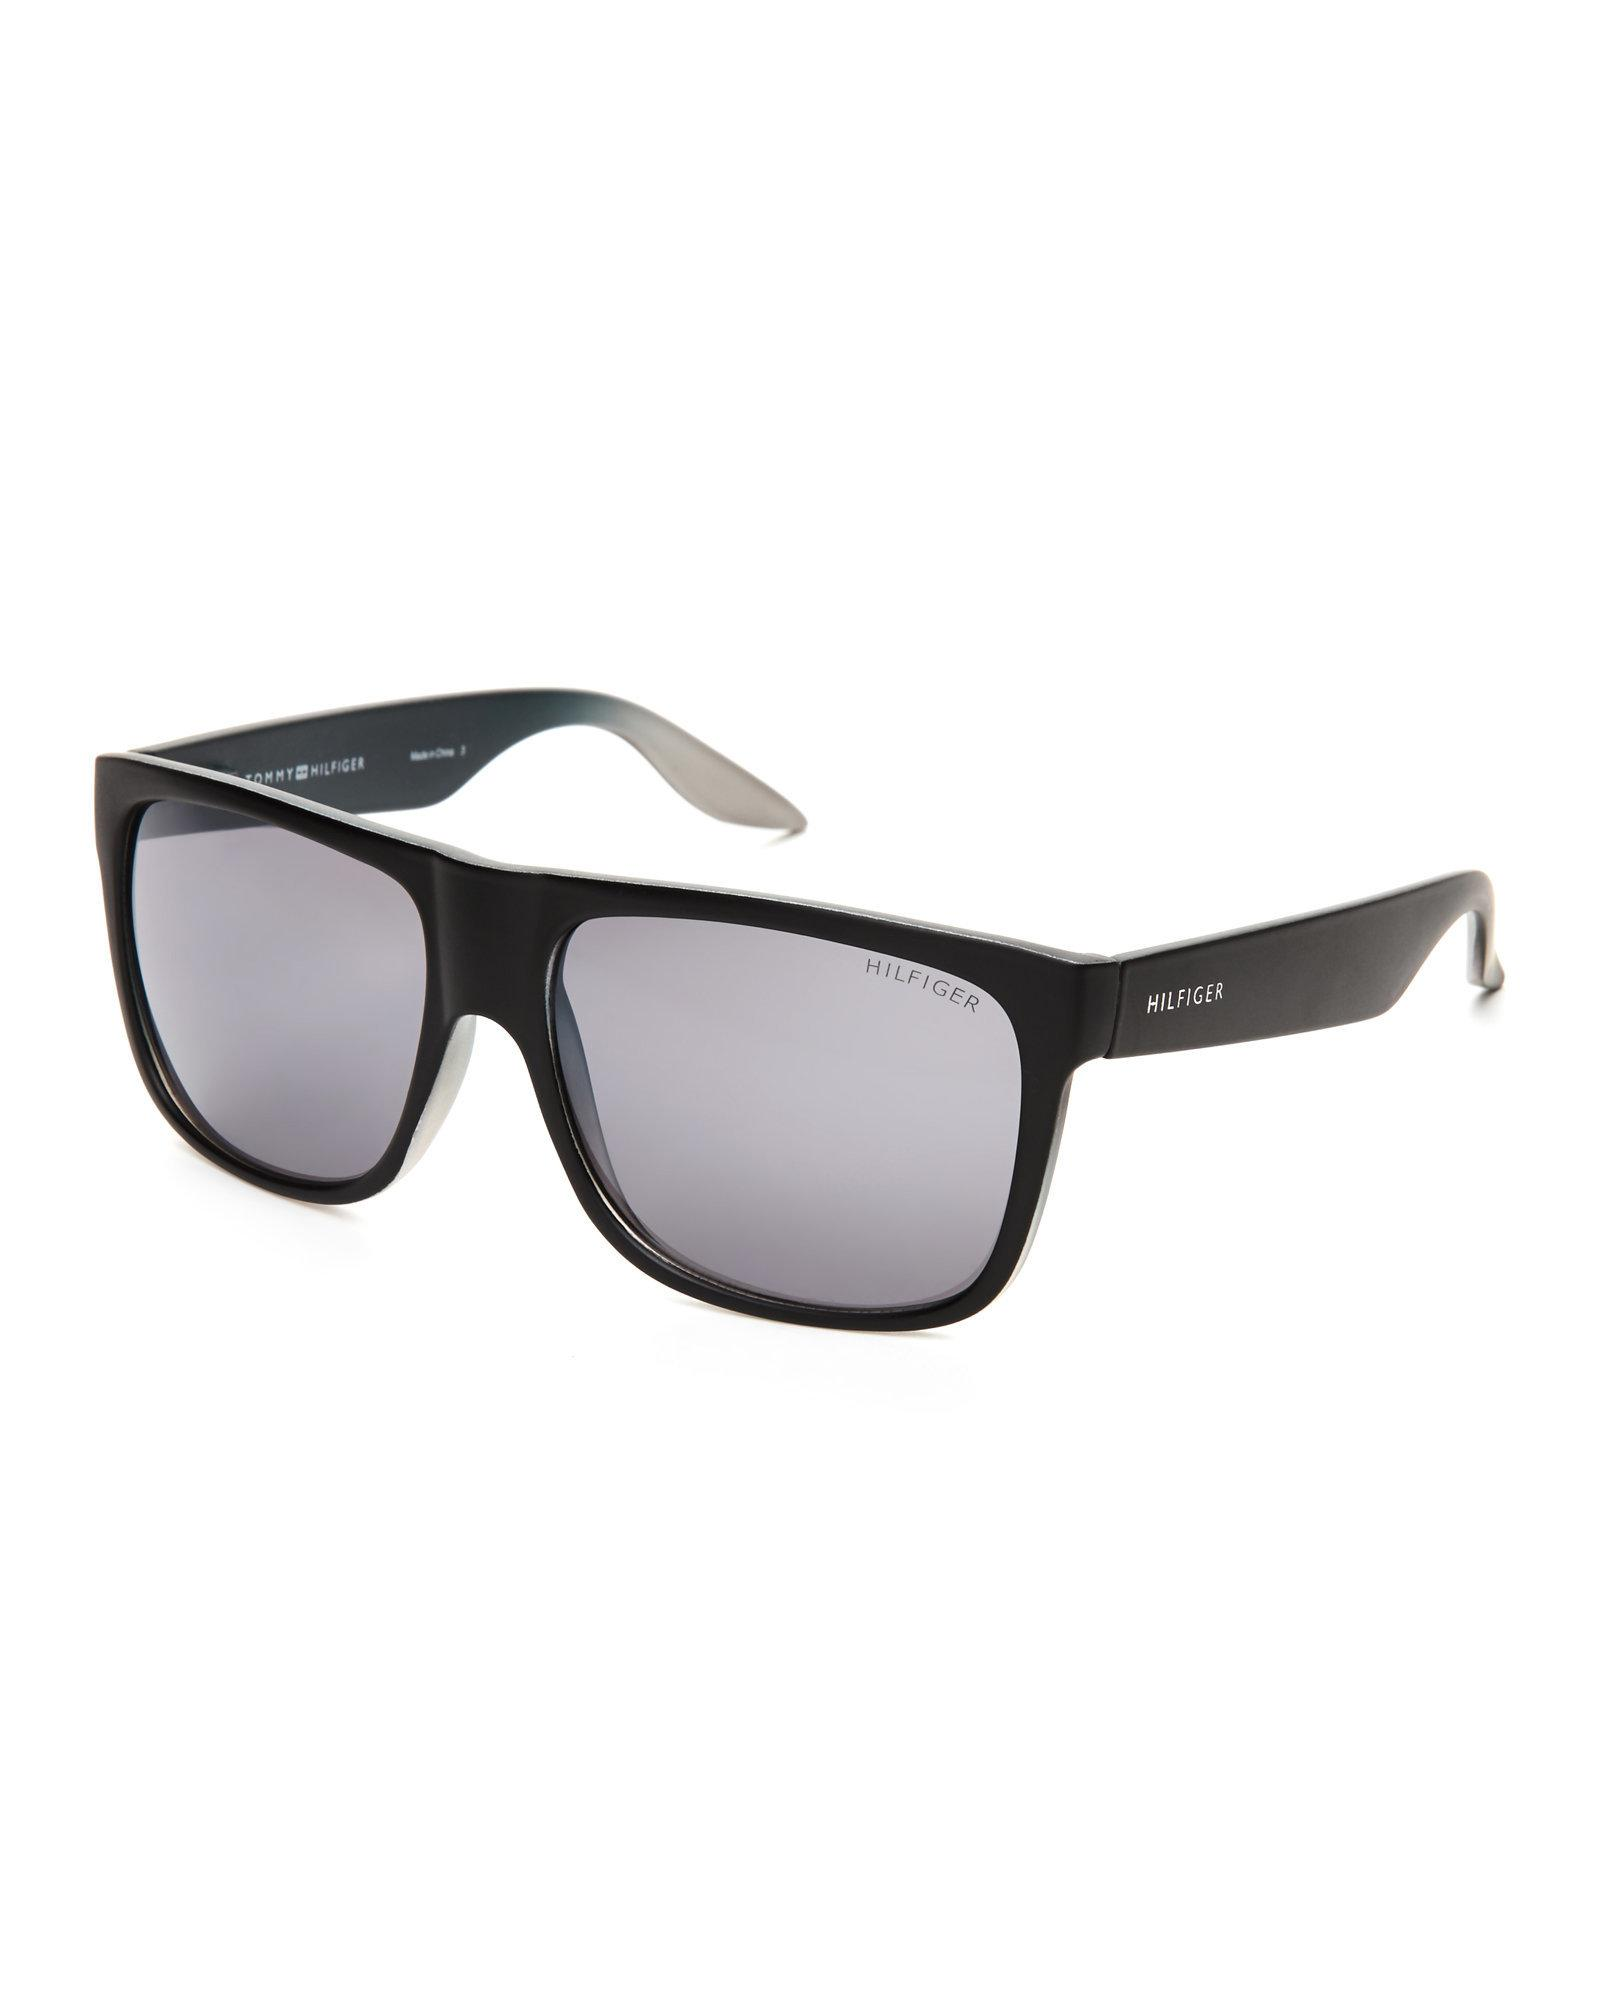 Tommy Hilfiger. Men's Black Tanner Wayfarer Sunglasses